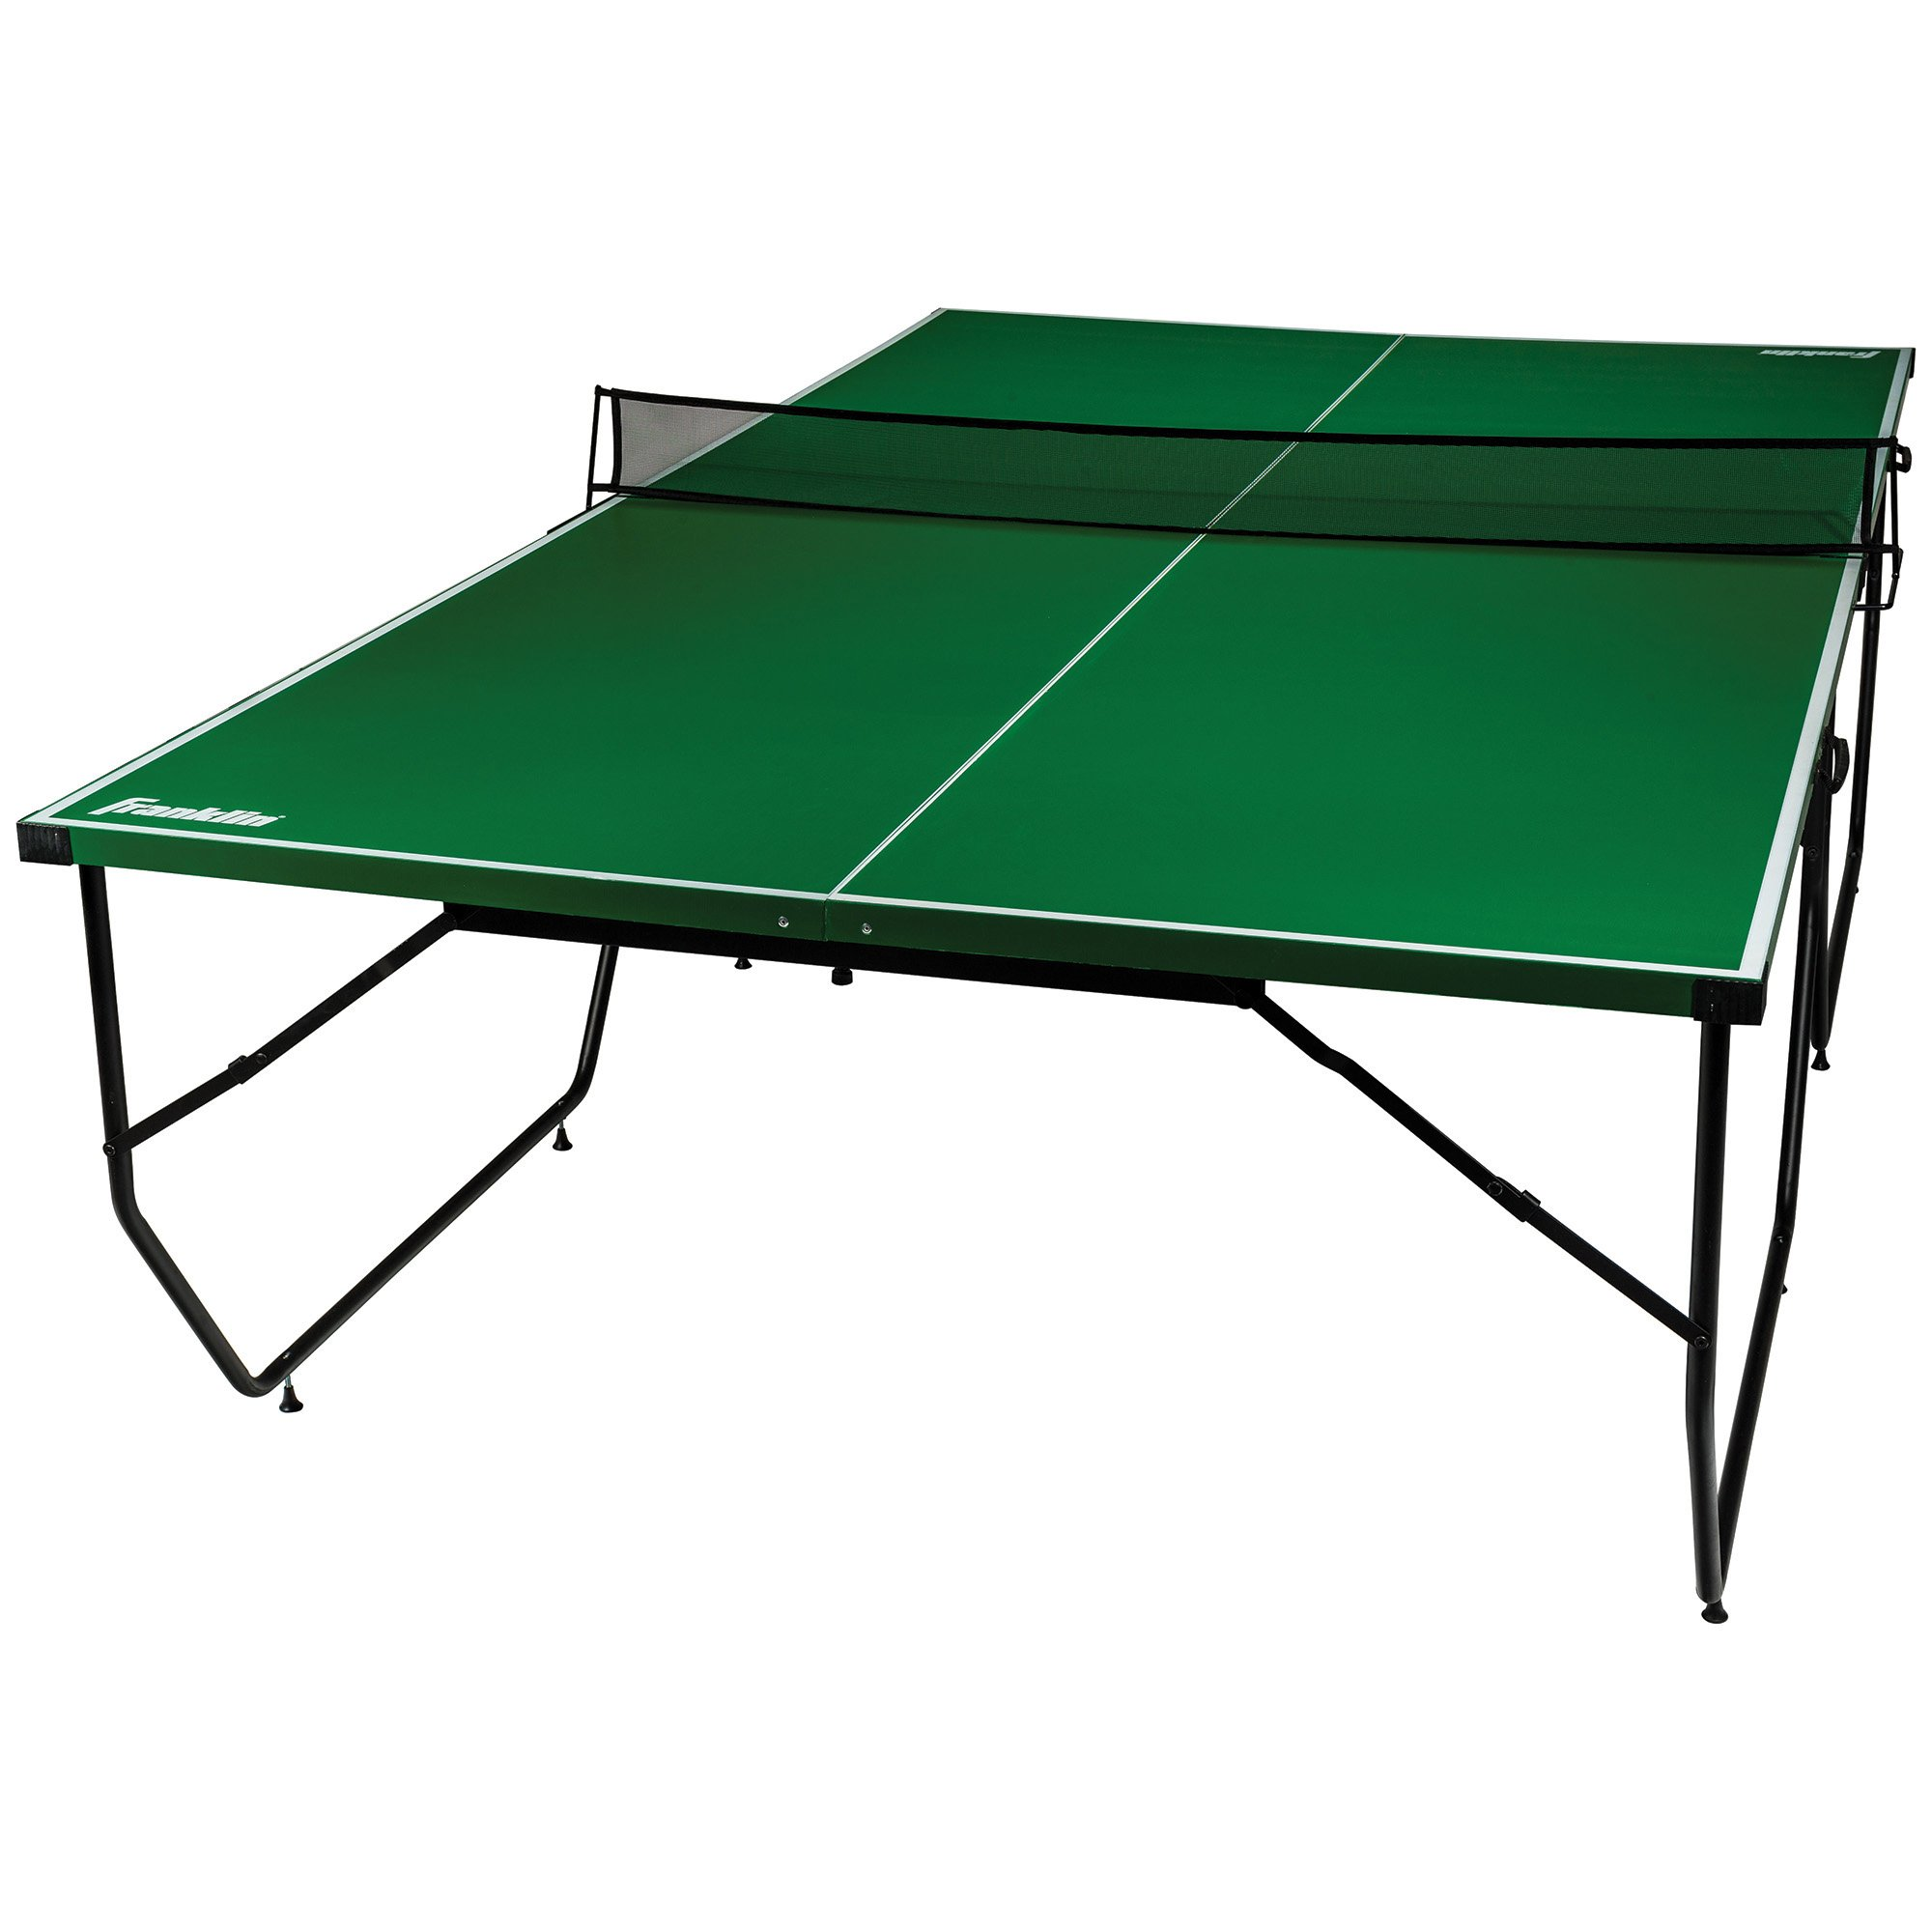 Franklin Sports Table Tennis Table - 9' x 5'